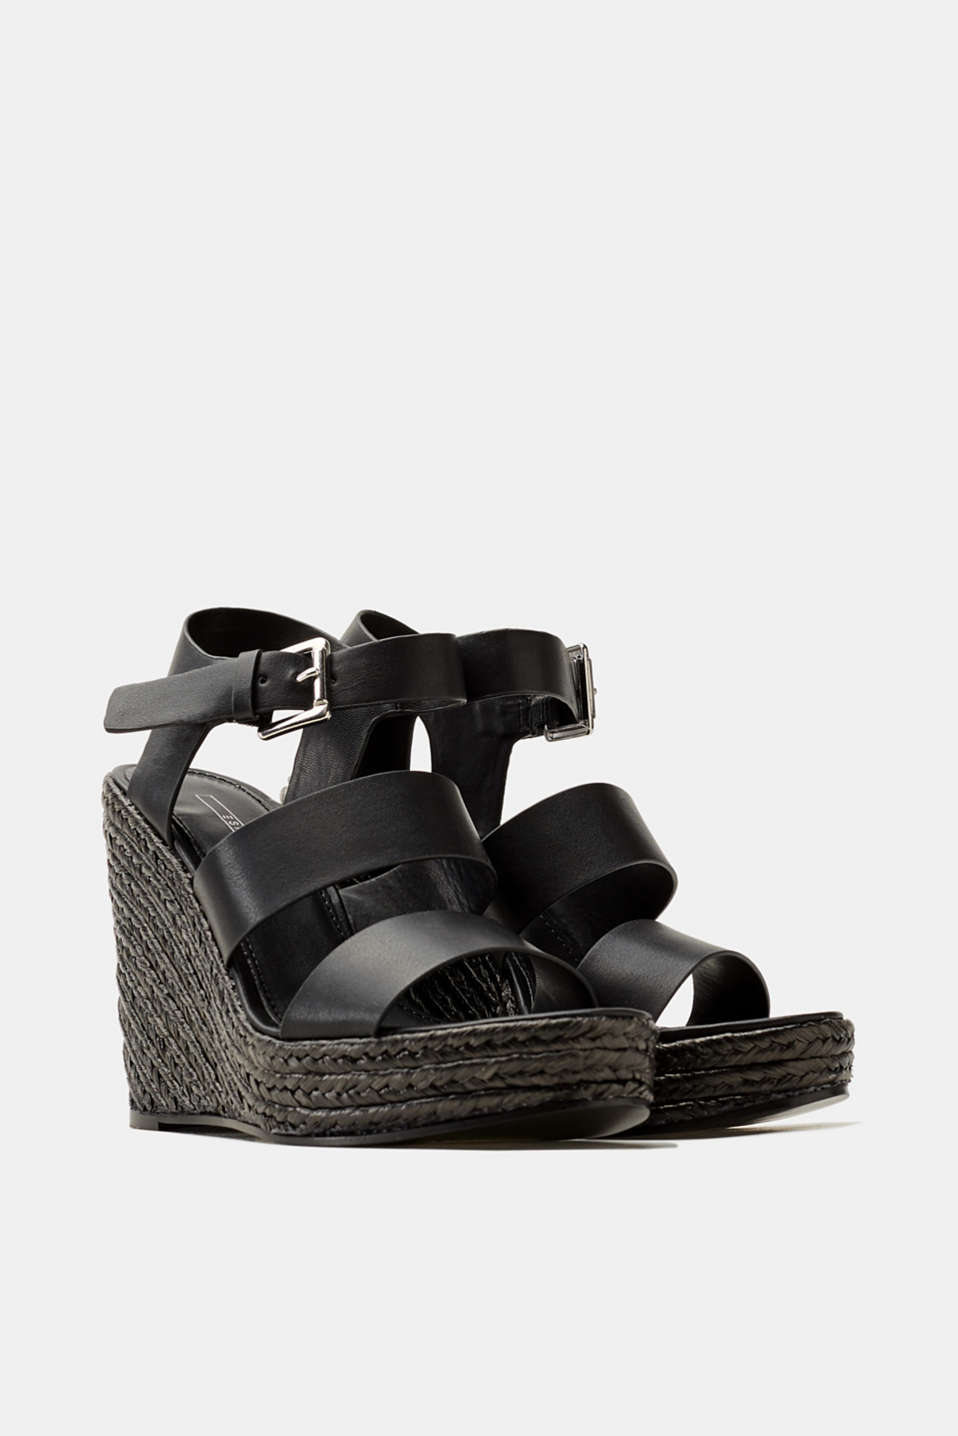 Faux leather wedge sandals trimmed with bast